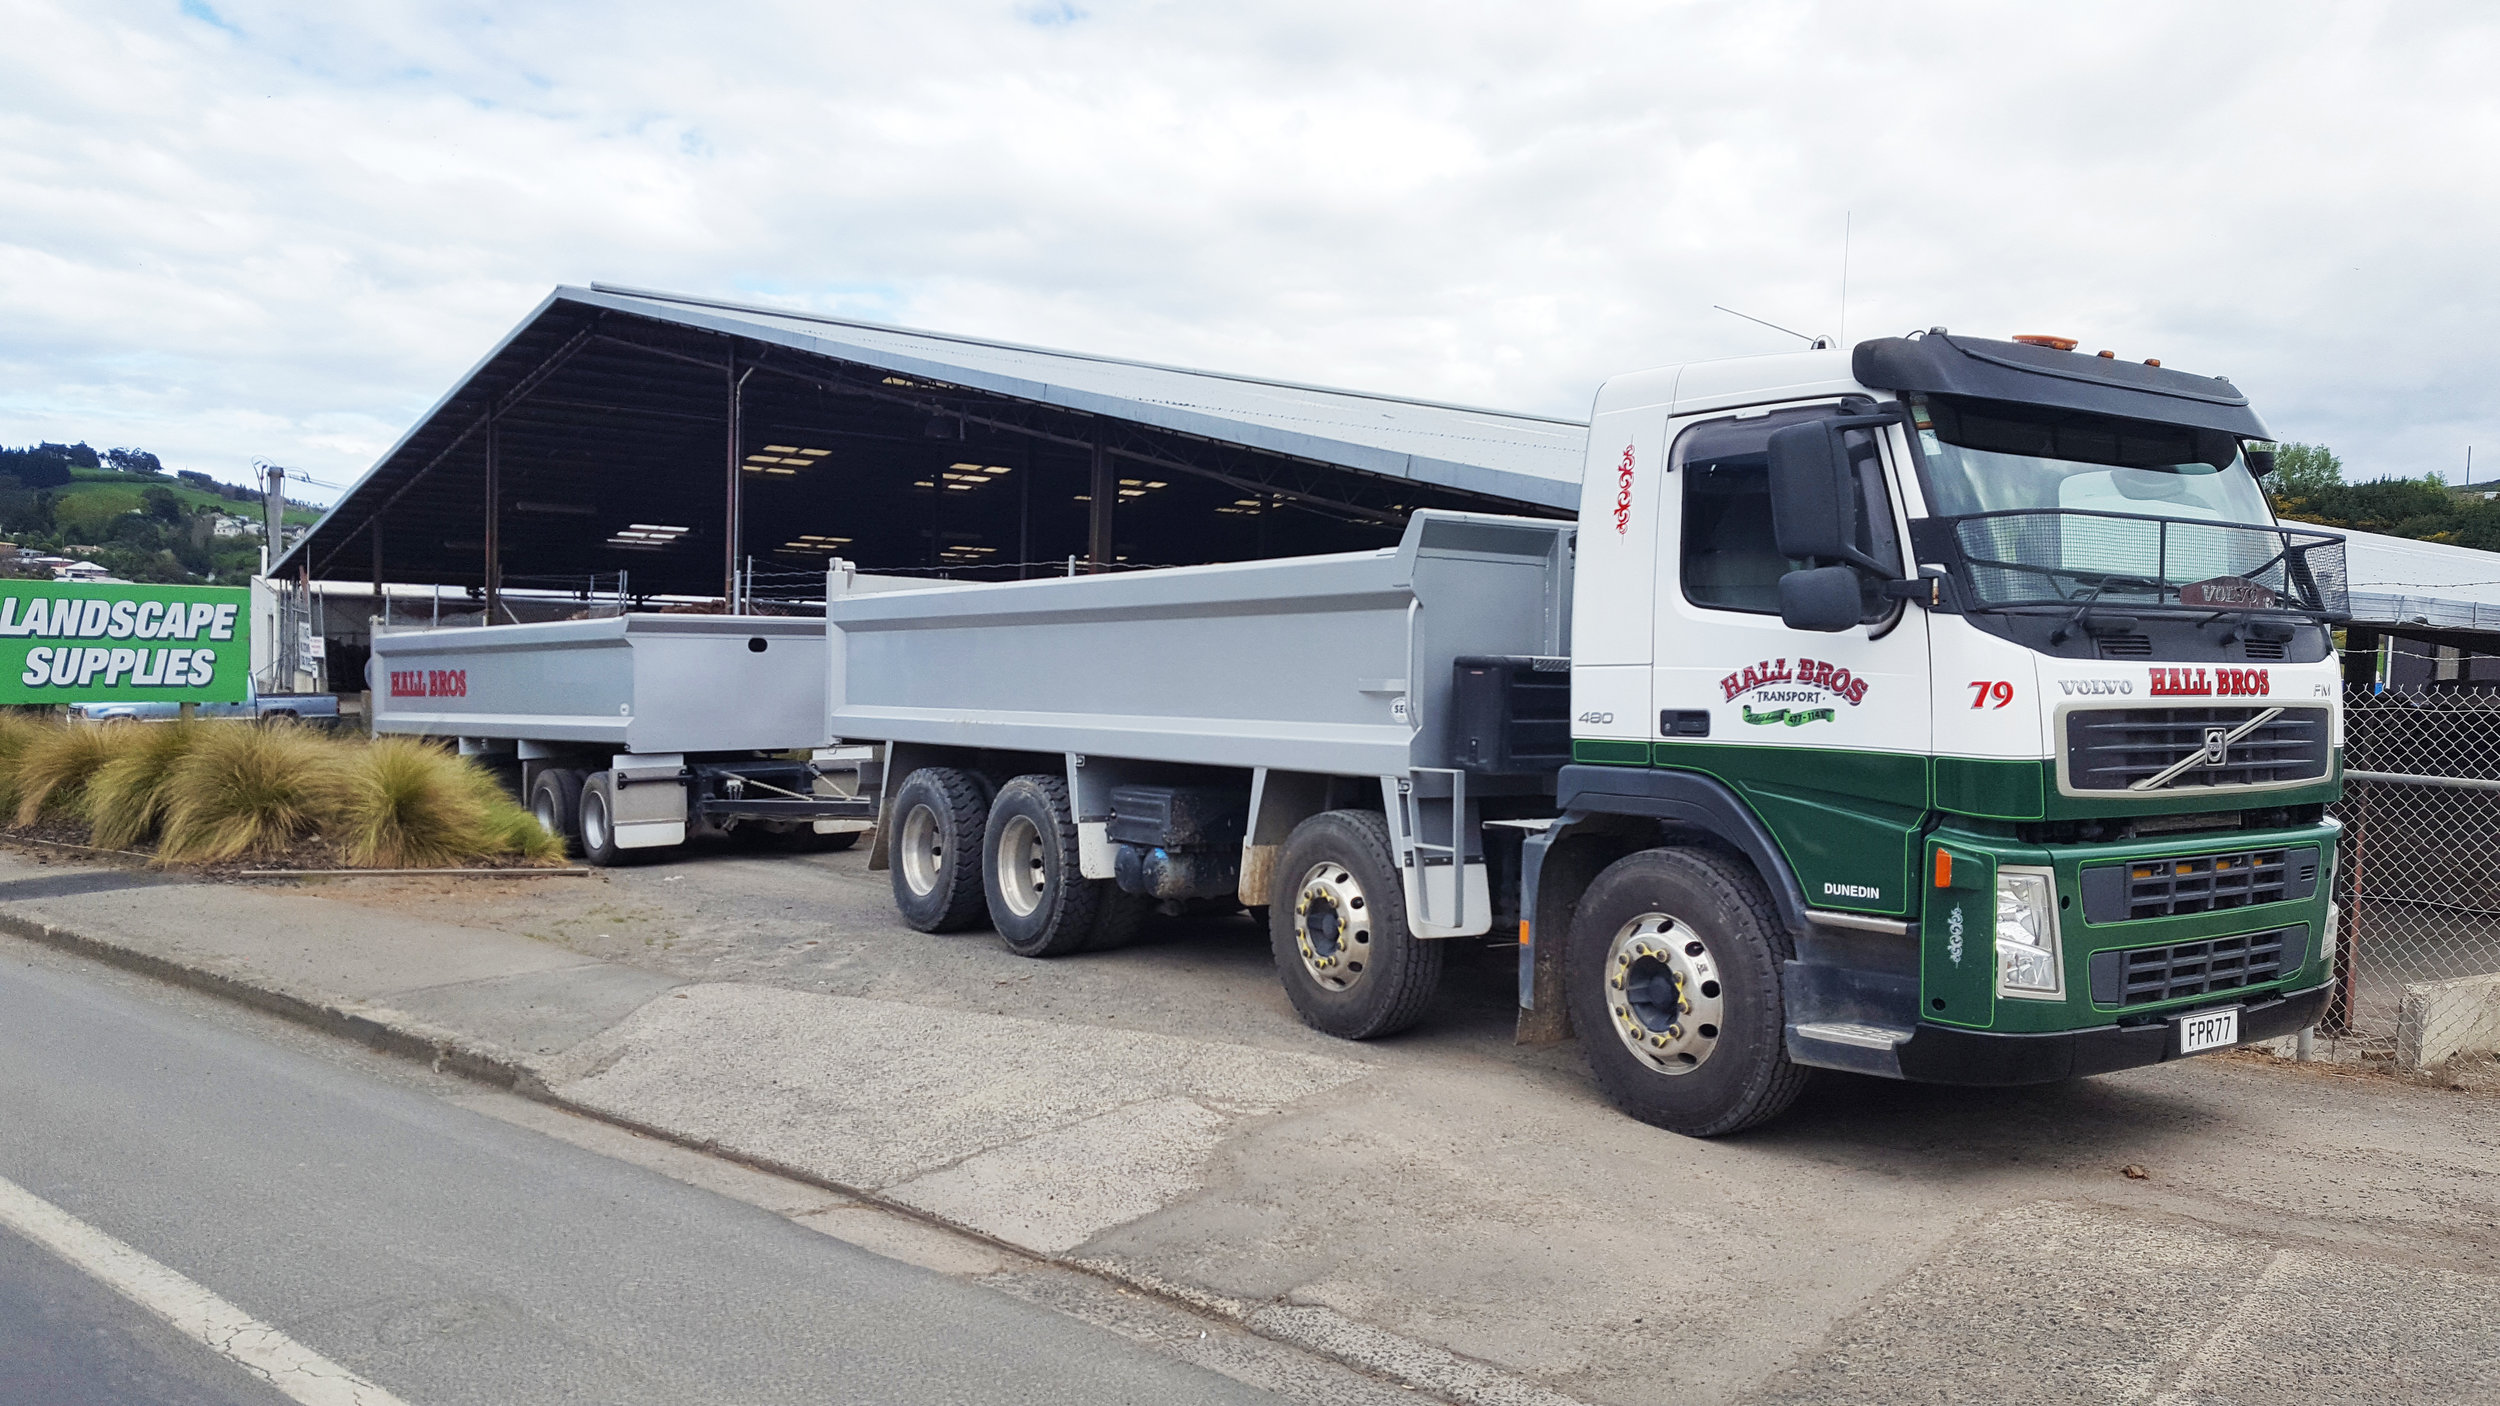 Hardox Truck & Trailer made by SEC Engineering for Hall Bros Dunedin.